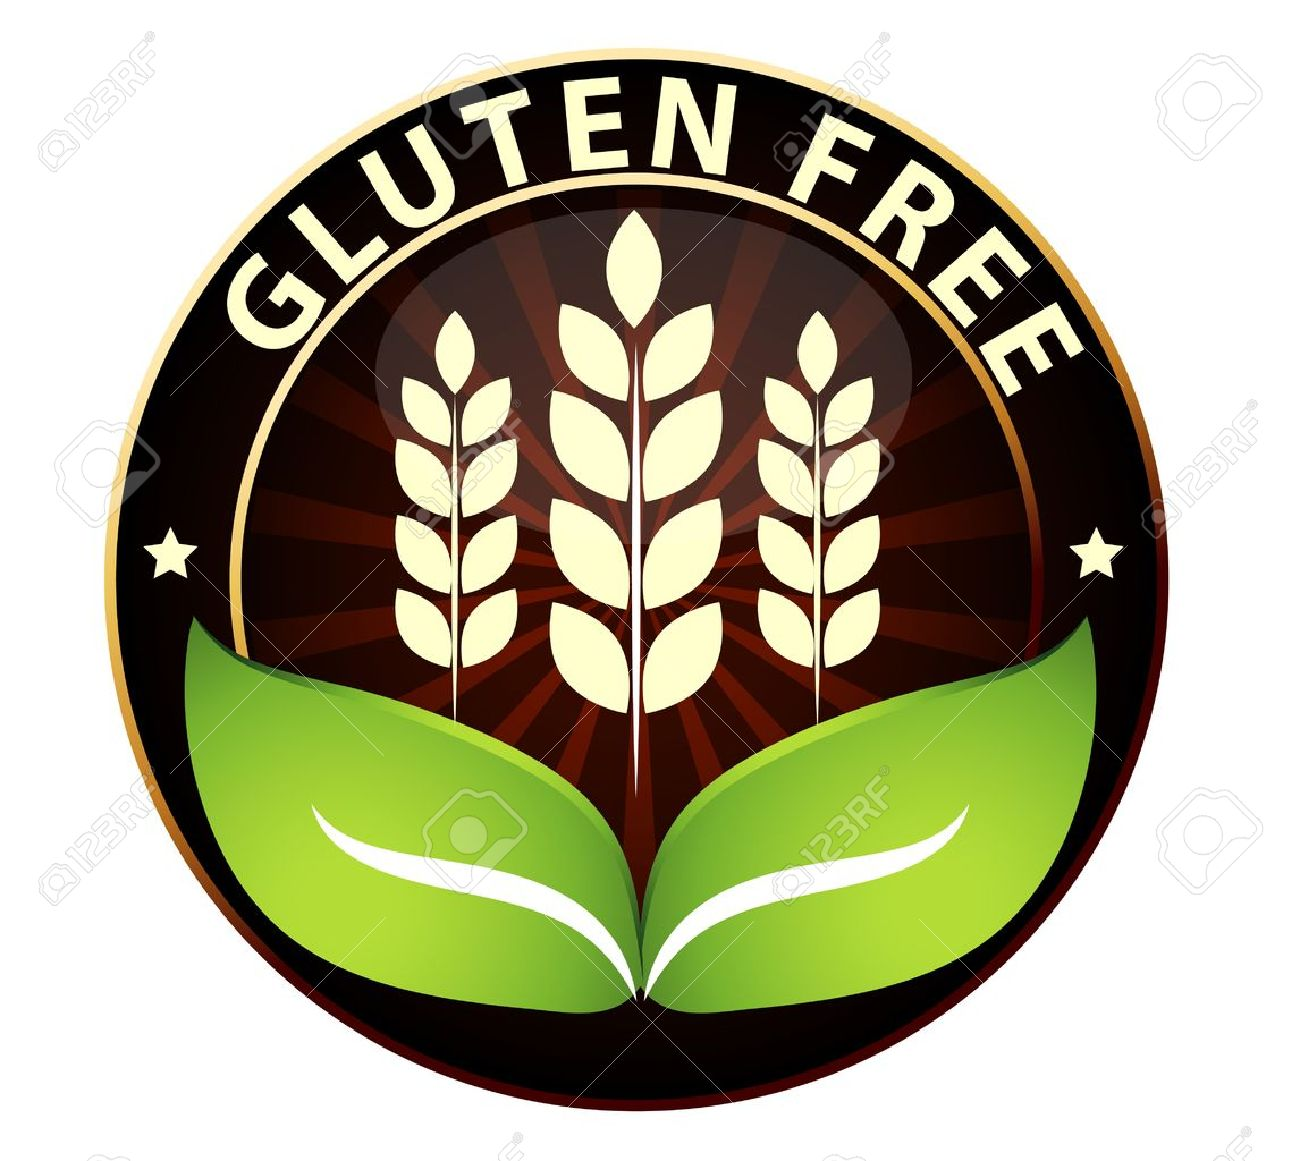 Beautiful gluten free food packaging sign can be used as a stamp beautiful gluten free food packaging sign can be used as a stamp emblem seal biocorpaavc Gallery